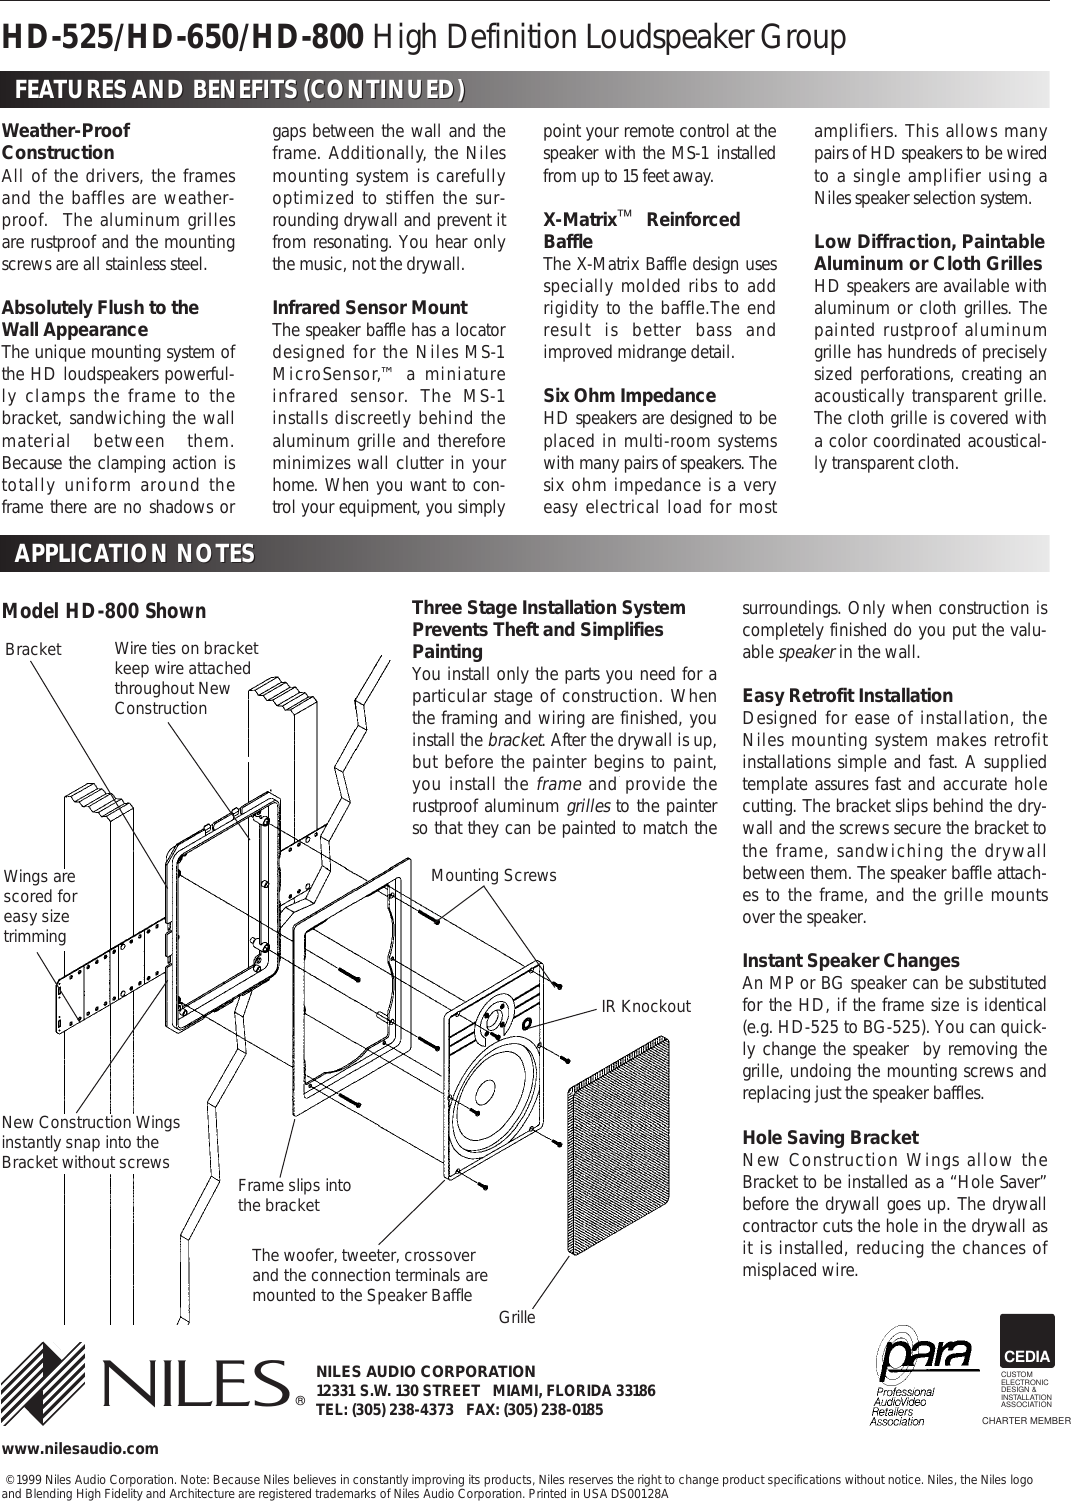 Niles Audio Hd 525 55 Hz To 21 Khz Users Manual Ds00128a Hd525 800 Cedia Wiring Diagram Page 2 Of